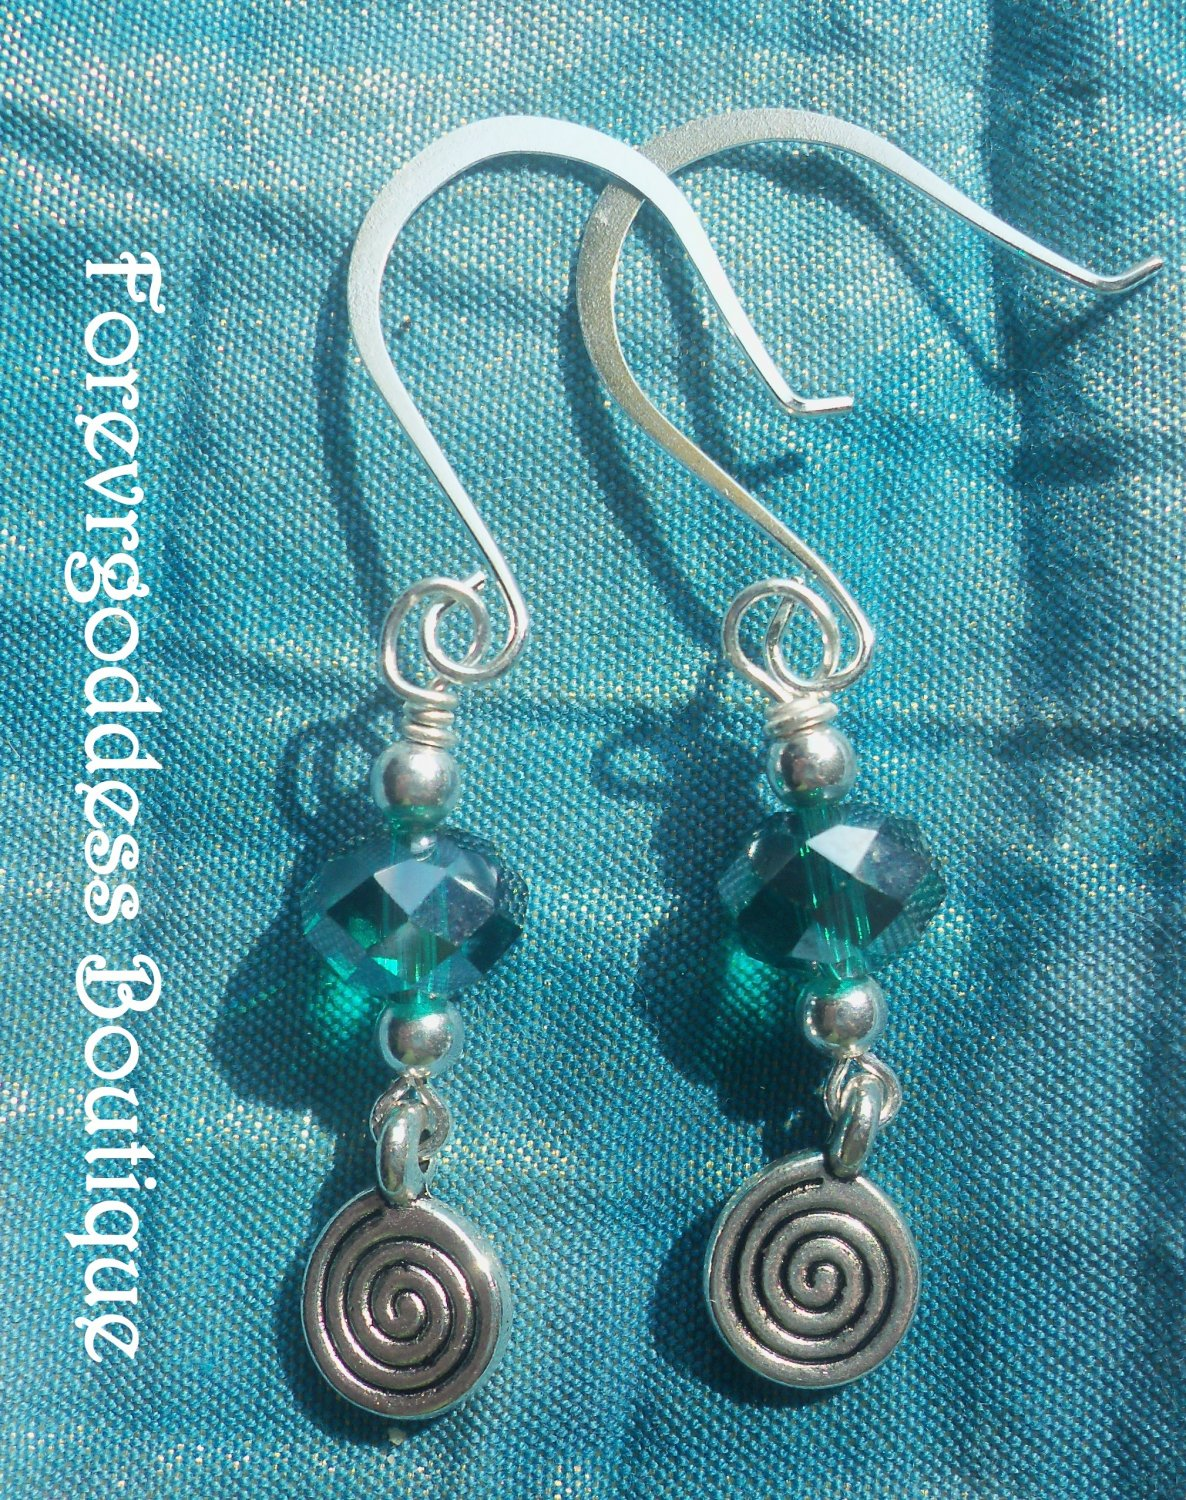 Teal crystals and Swirl  earrings